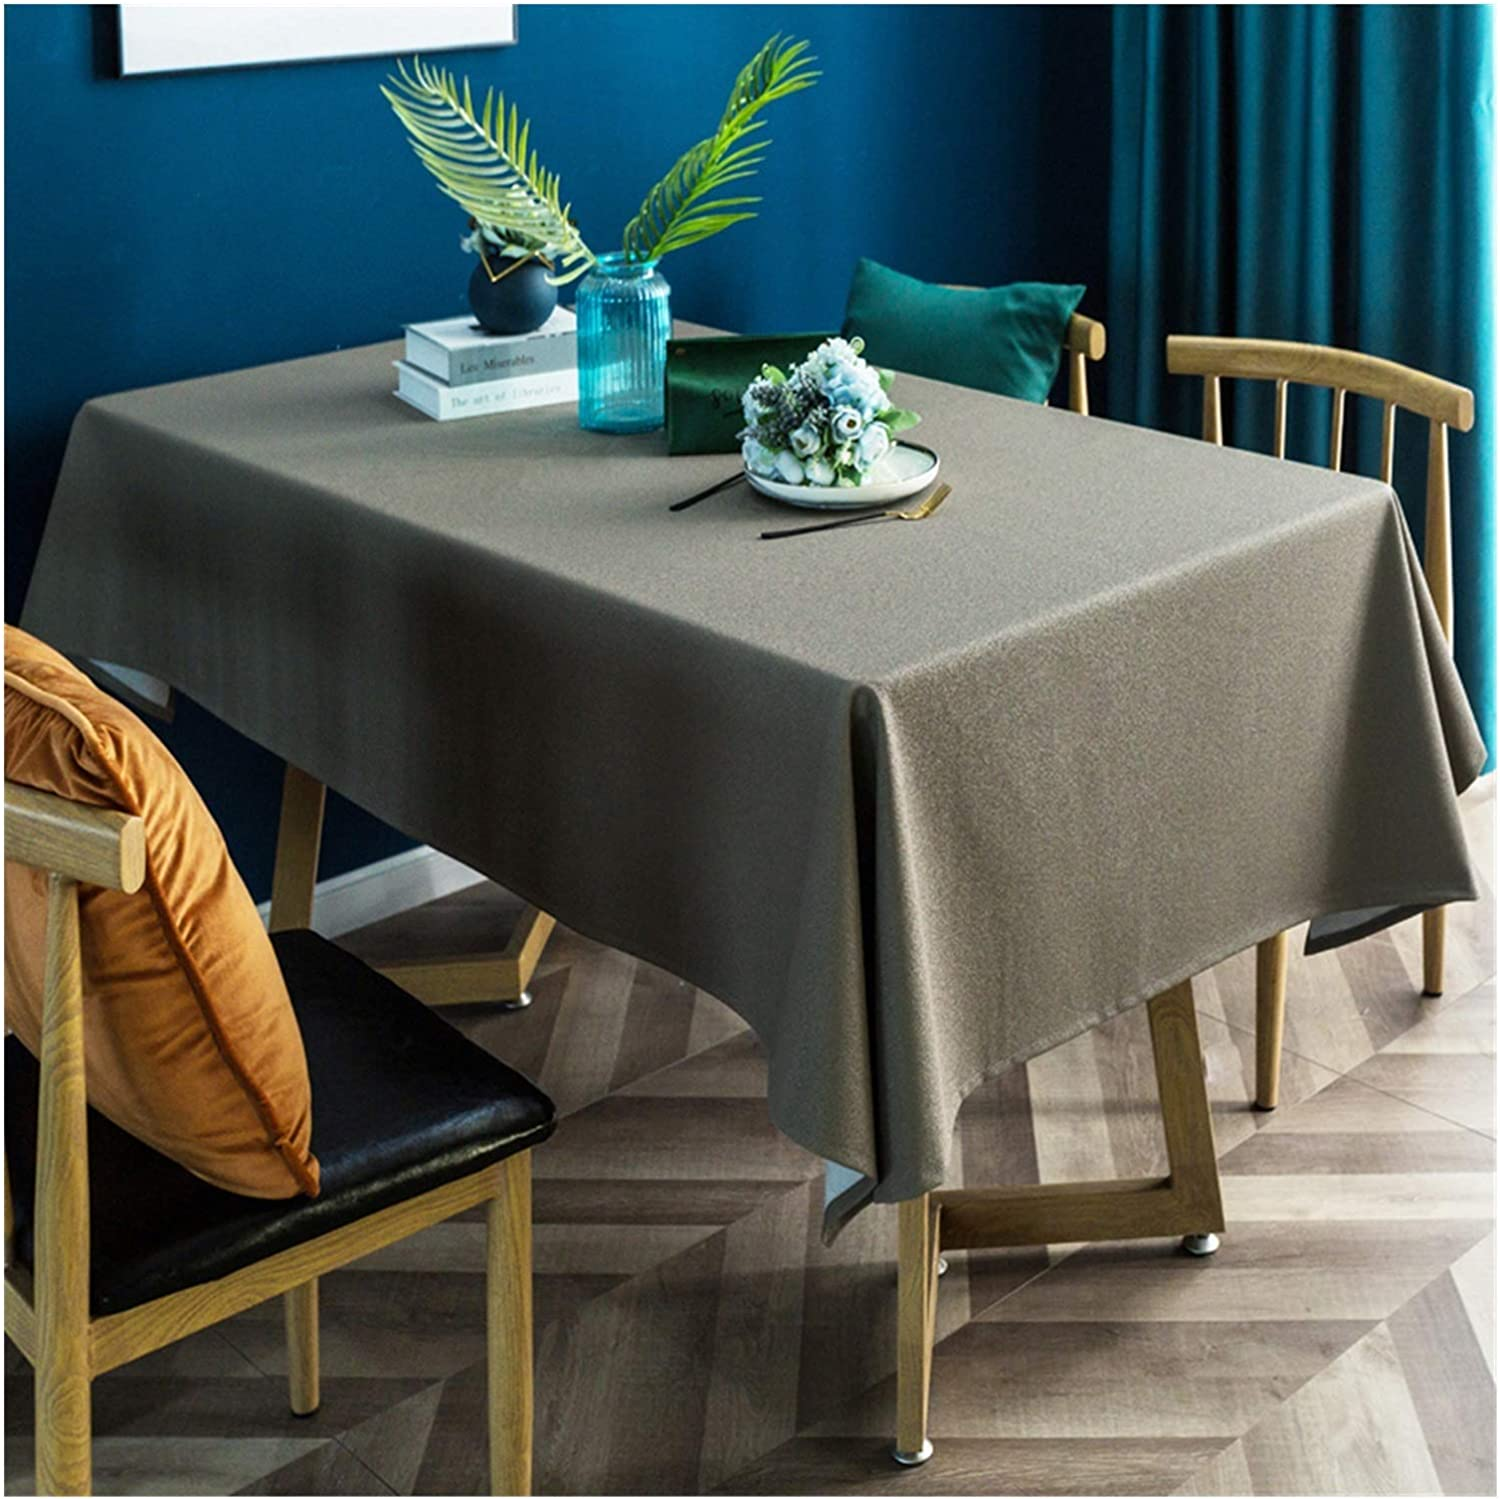 Table Cover Cloth and Oil-Proof Houston Mall Finally popular brand Color Rectangular M Solid